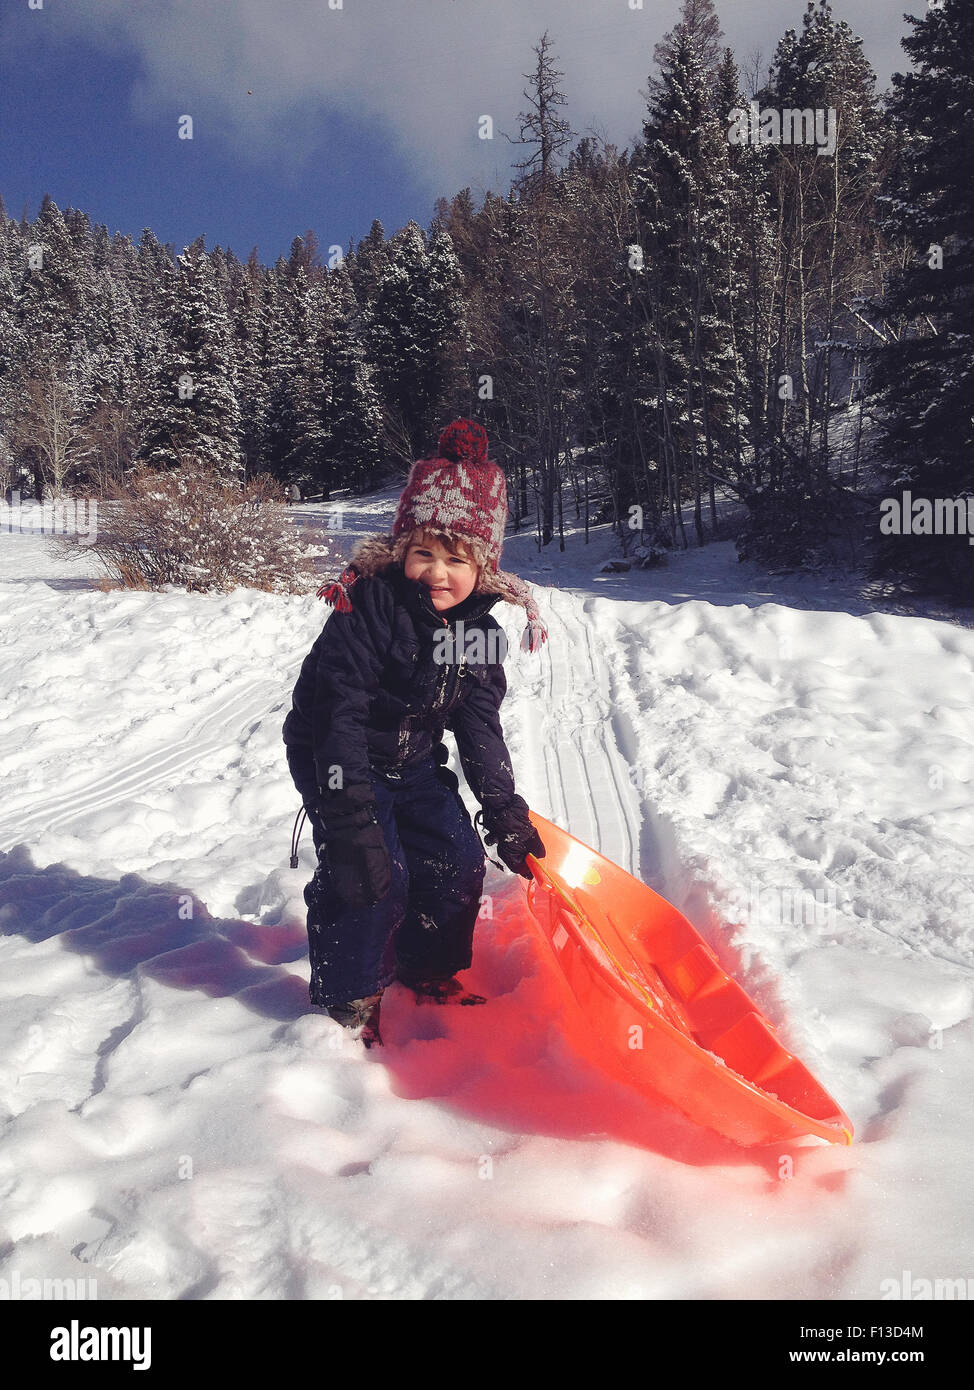 Boy sledding in the snow - Stock Image